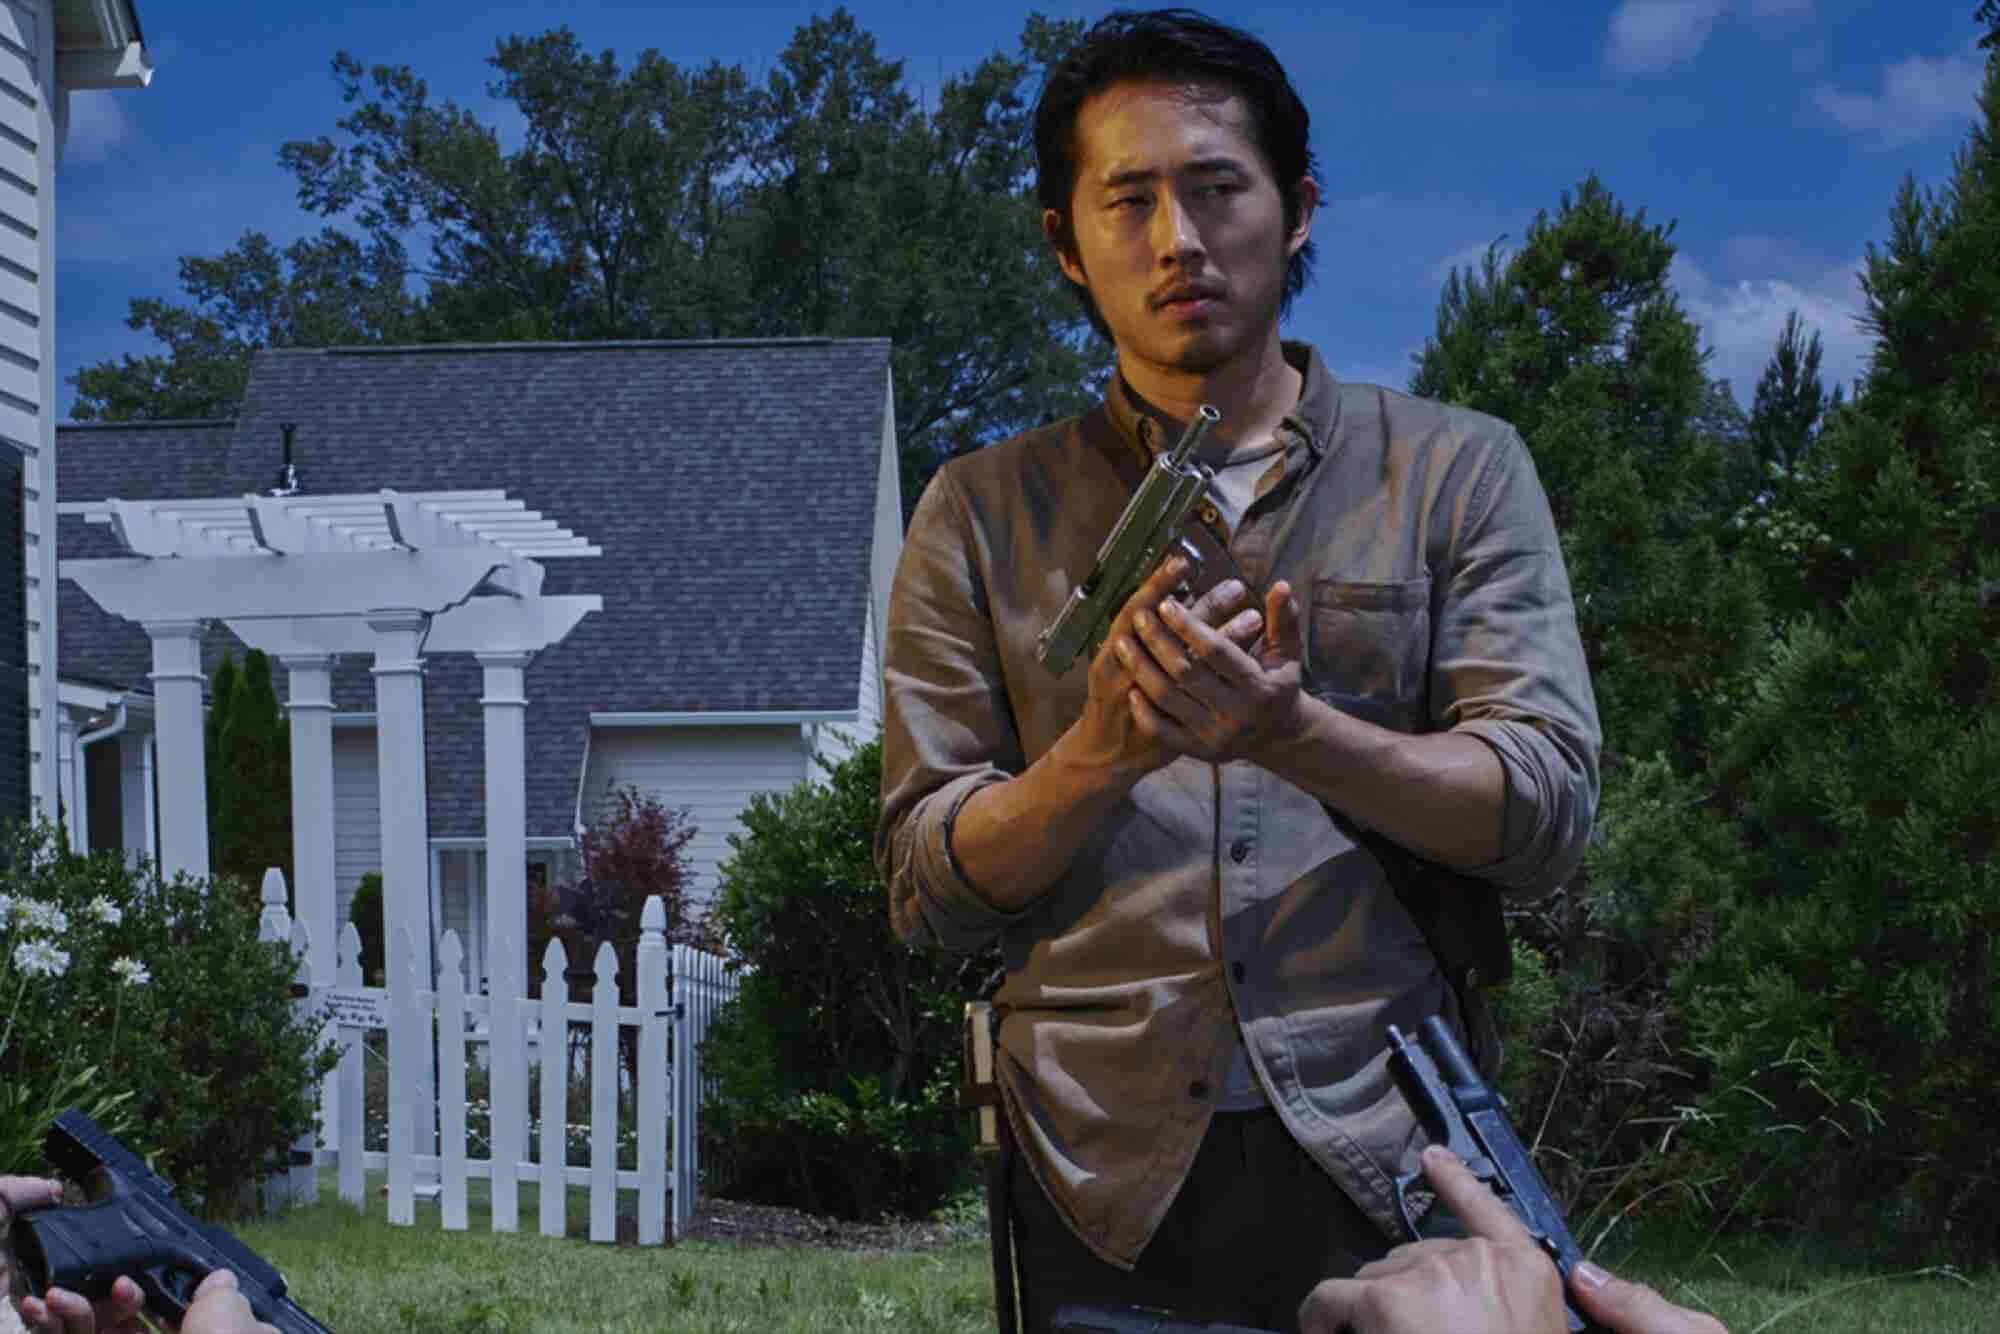 Is Your Team Starting to Look Like 'The Walking Dead'? 3 Ways to Resurrect Team Morale.